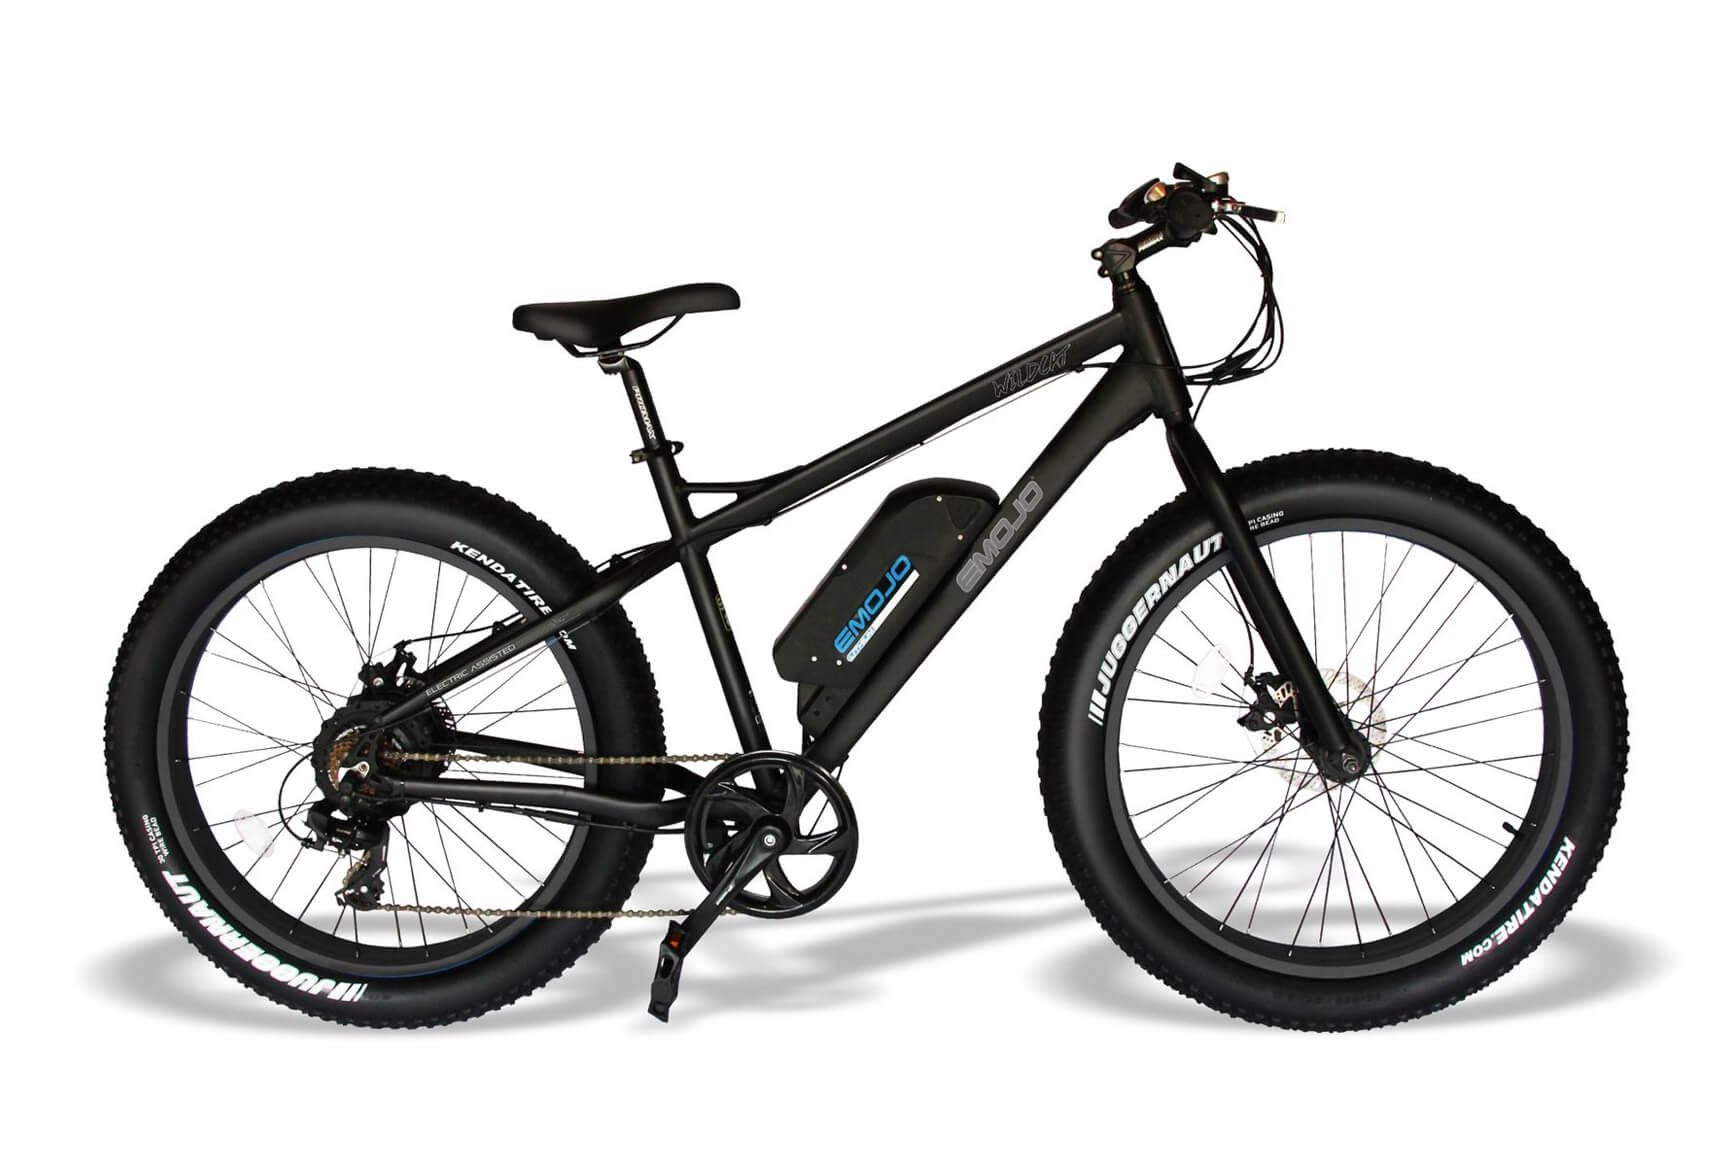 EMOJO Wildcat Fat Tire Electric Bike